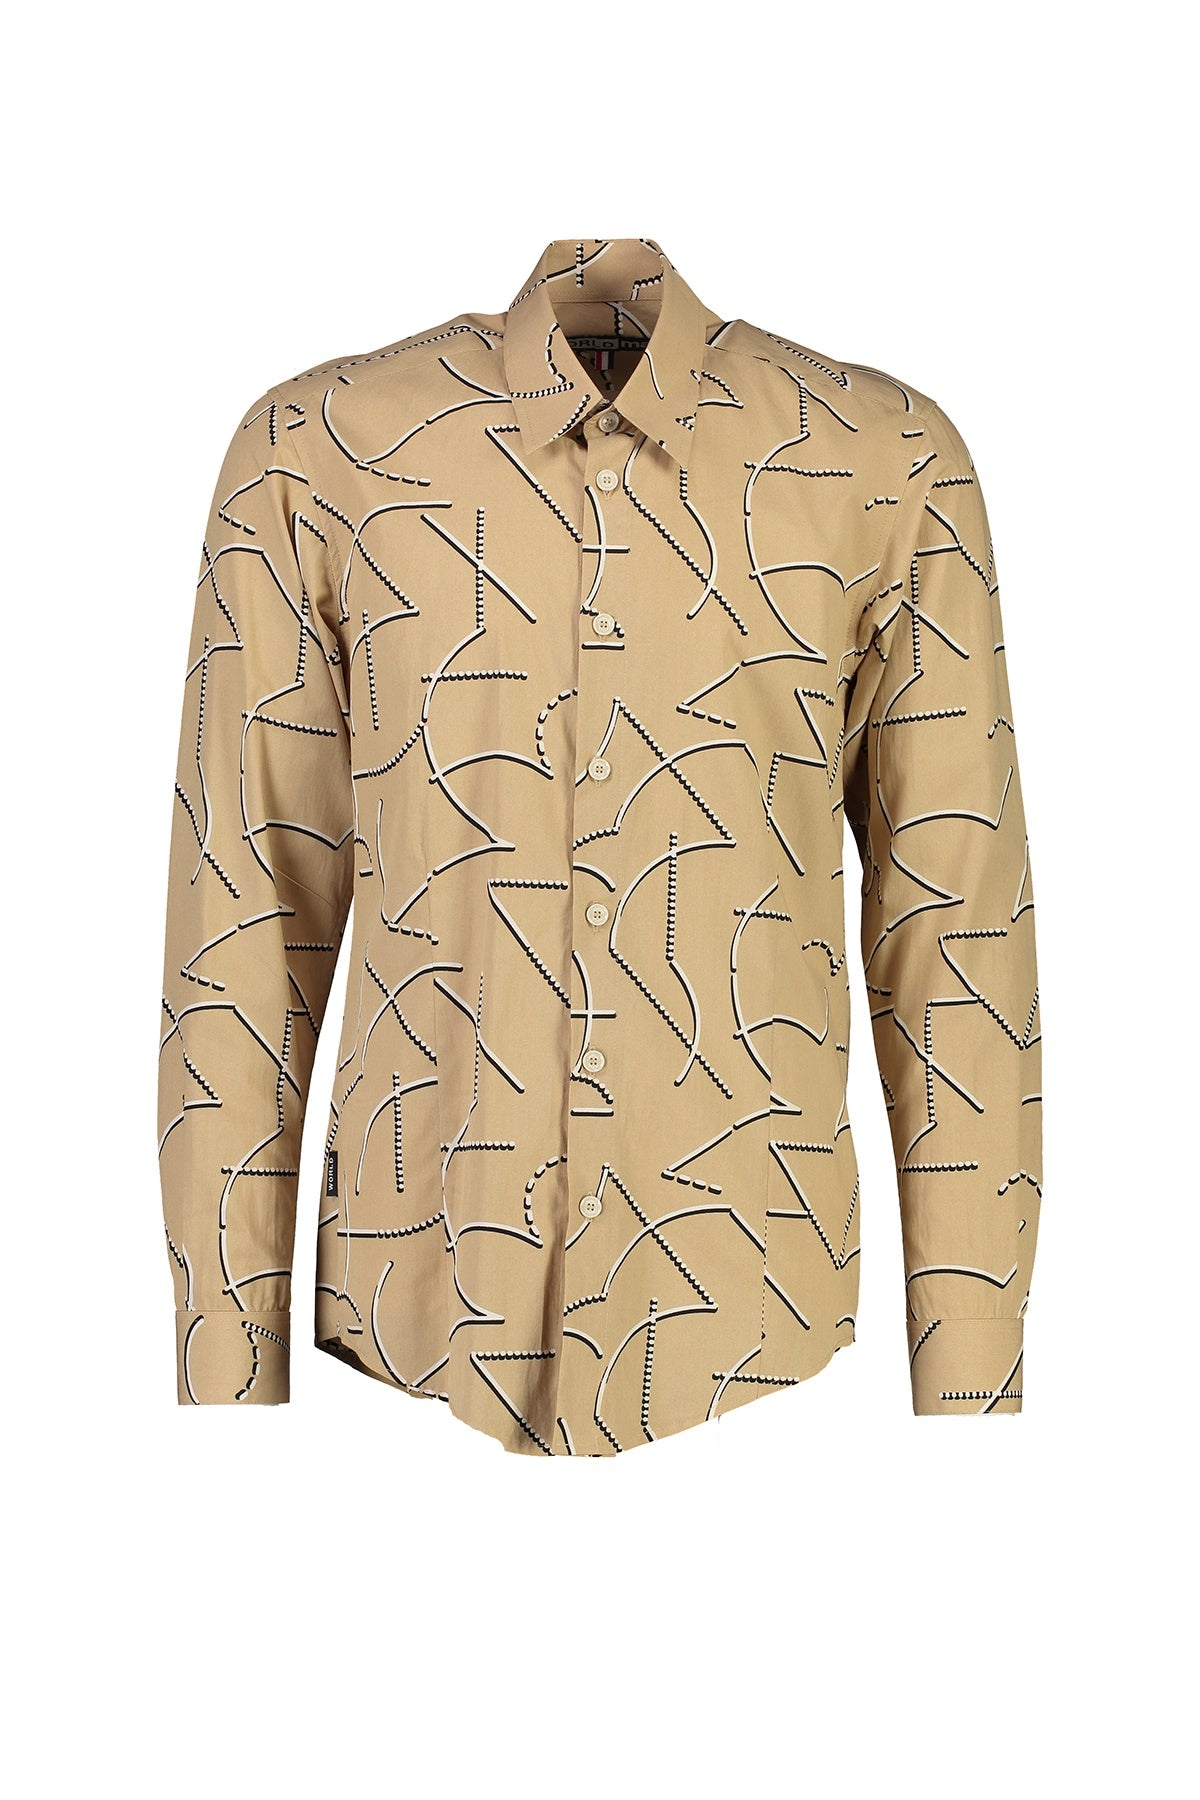 WORLDman 4560 Perverse Shirt Tan Print